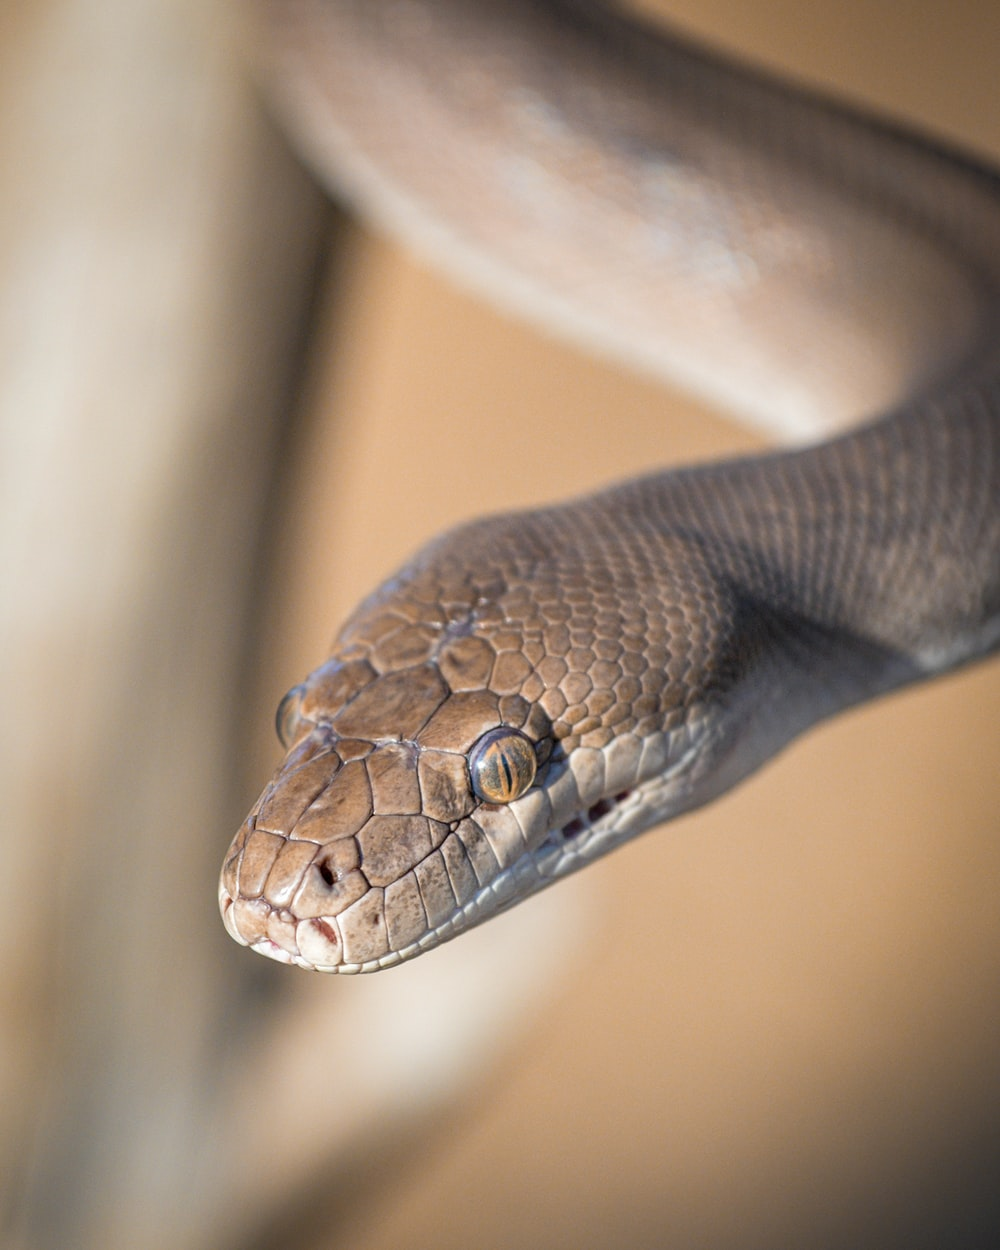 Snakebite First Aid And Treatment Procedure